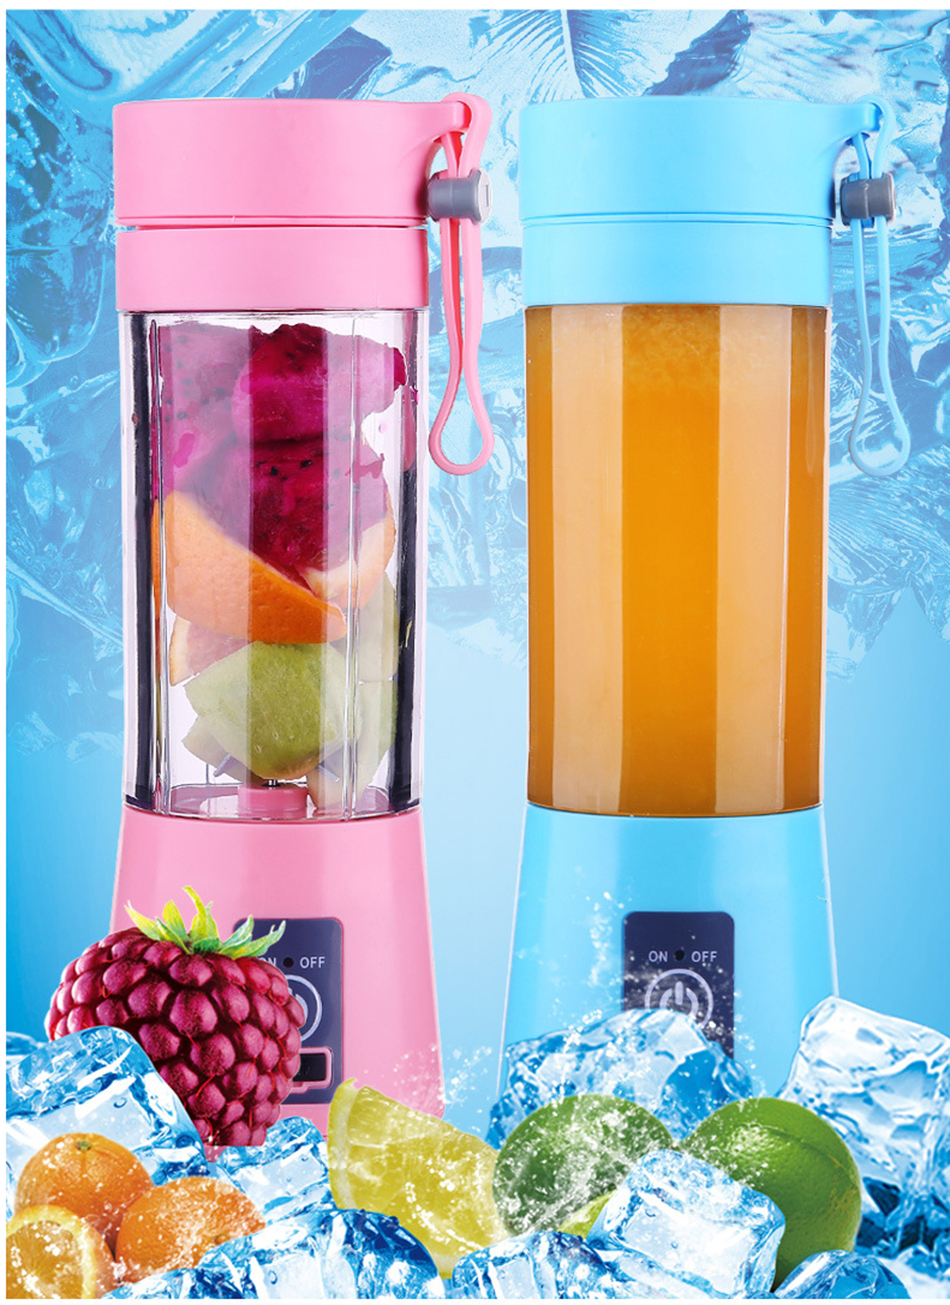 HTB187hqWmzqK1RjSZPcq6zTepXar 380ml Portable Juice Blender USB Juicer Cup Multi-function Fruit Mixer Six Blade Mixing Machine Smoothies Baby Food dropshipping